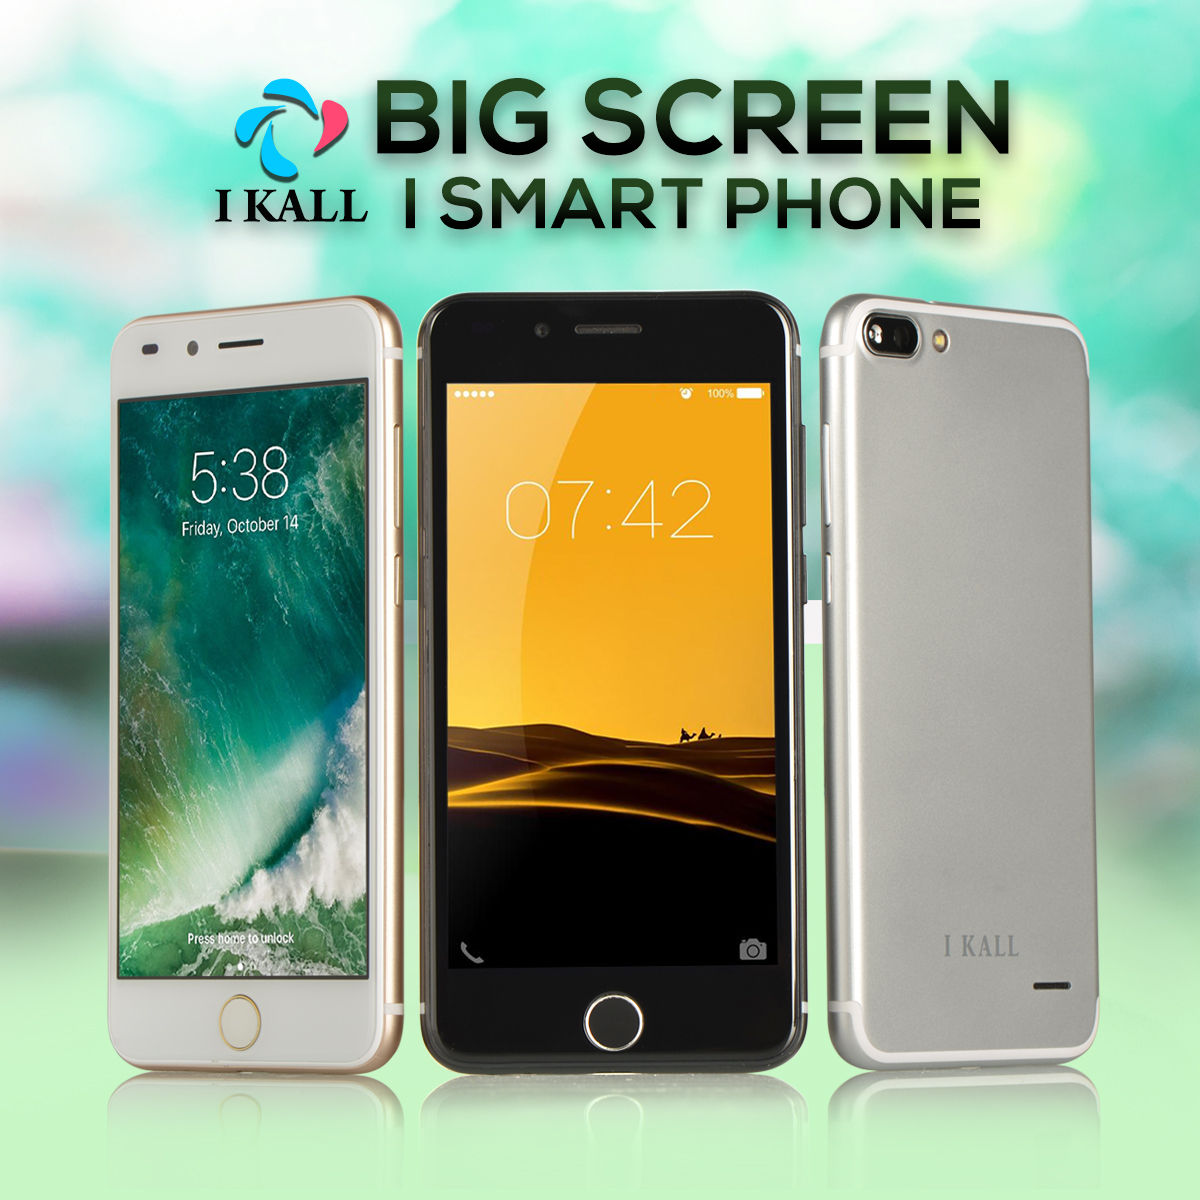 Buy I Kall Big Screen I Smart Phone Online at Best Price in India on  Naaptol.com 282e48f98666